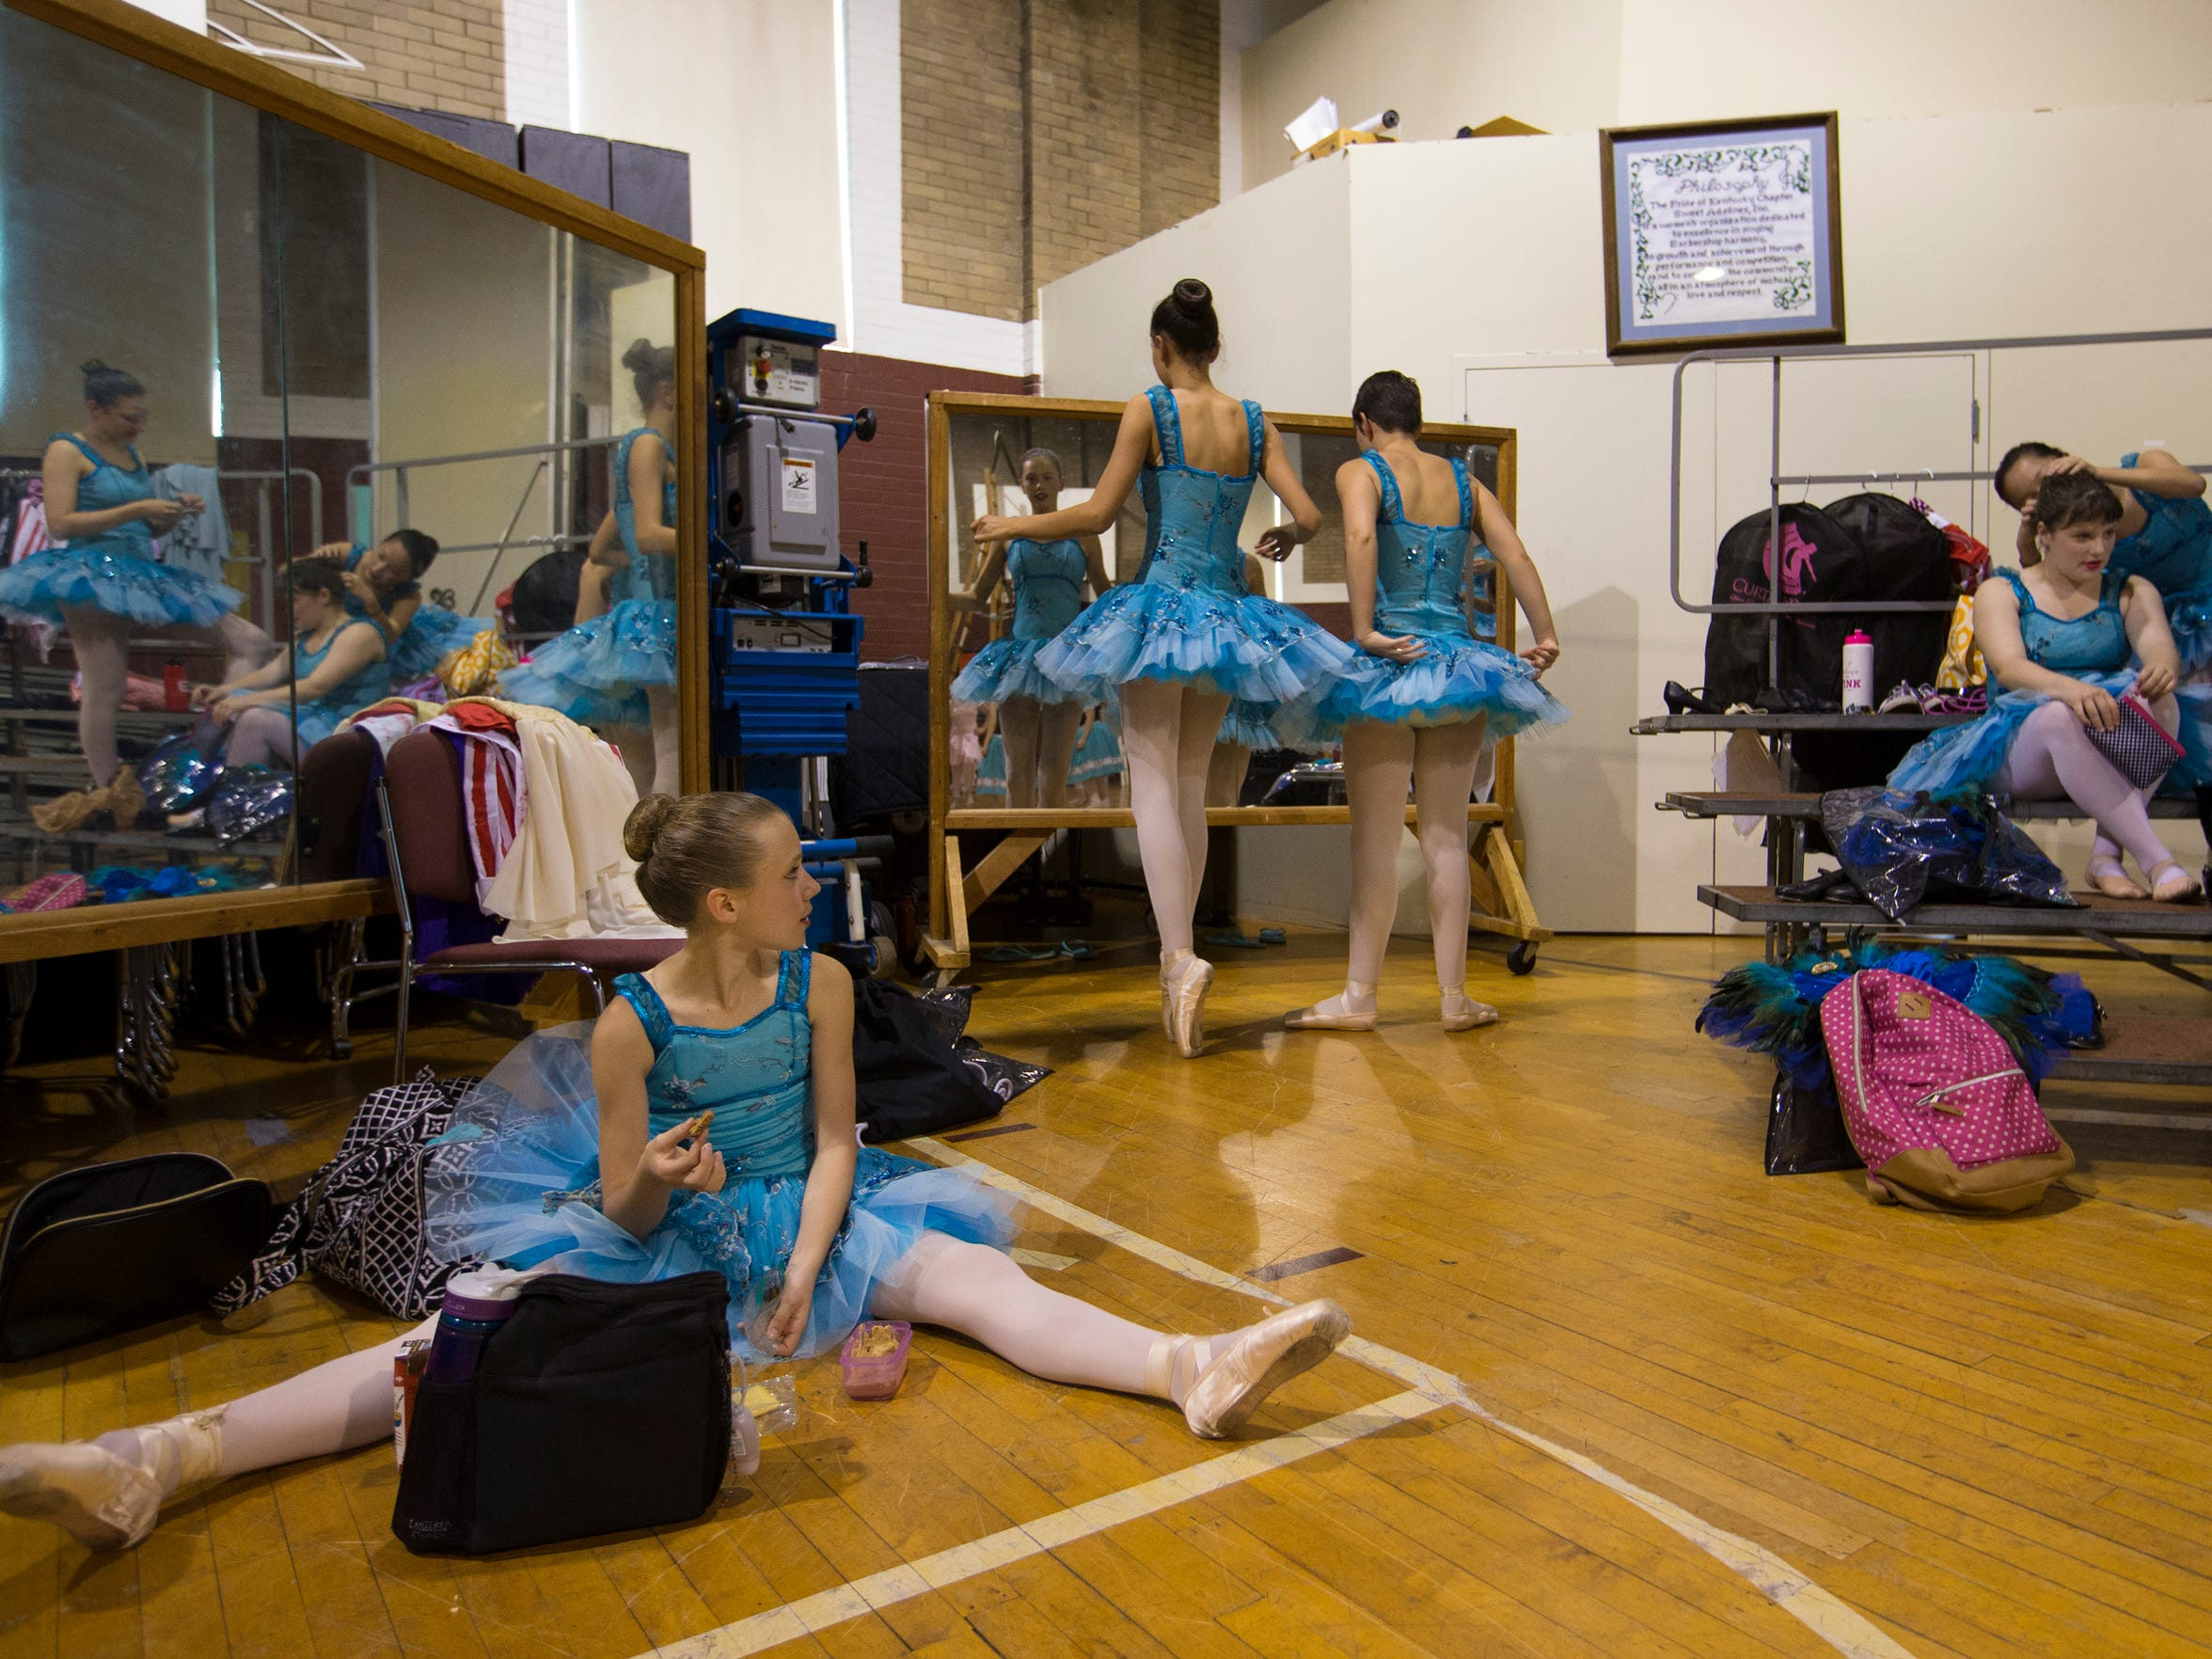 Ballet dancers prepared backstage for a dress rehearsal at the Clifton Center. In foreground is Dara Zaharik, age 11. May 18, 2017.